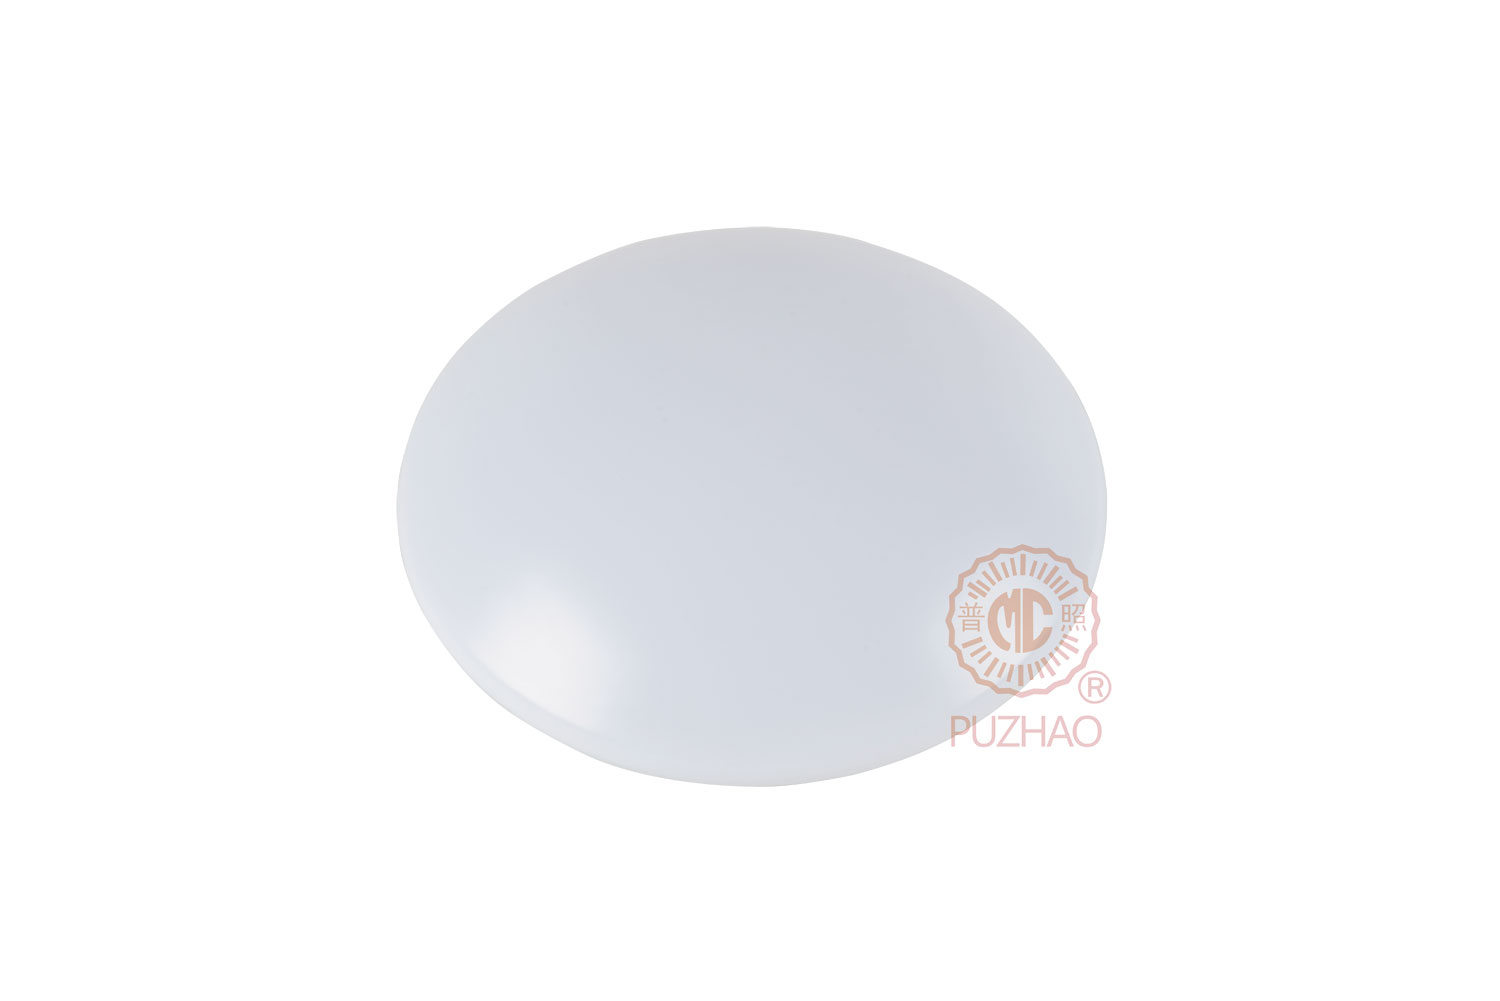 Pz-cl 24w- led ceiling  lighting